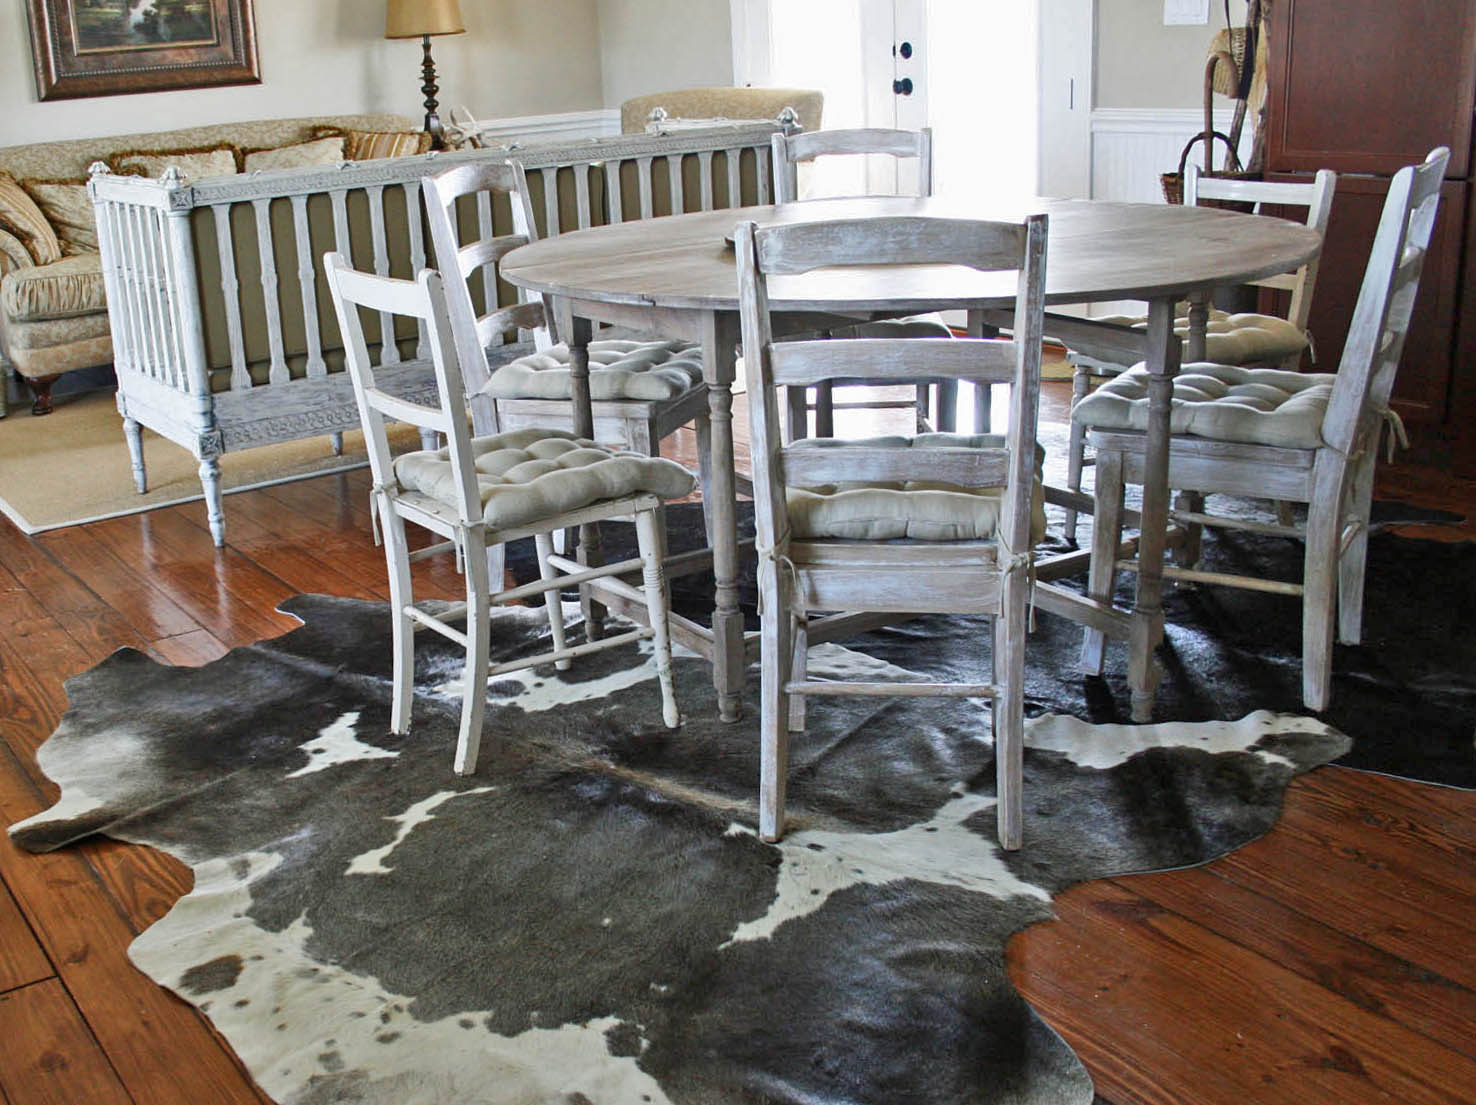 skinny on decorating with cowhide rugs kitchen table rugs On a sad note it did not occur to me beforehand that the black rug would make every hair shed by our collie as obvious as dandruff on a dark suit